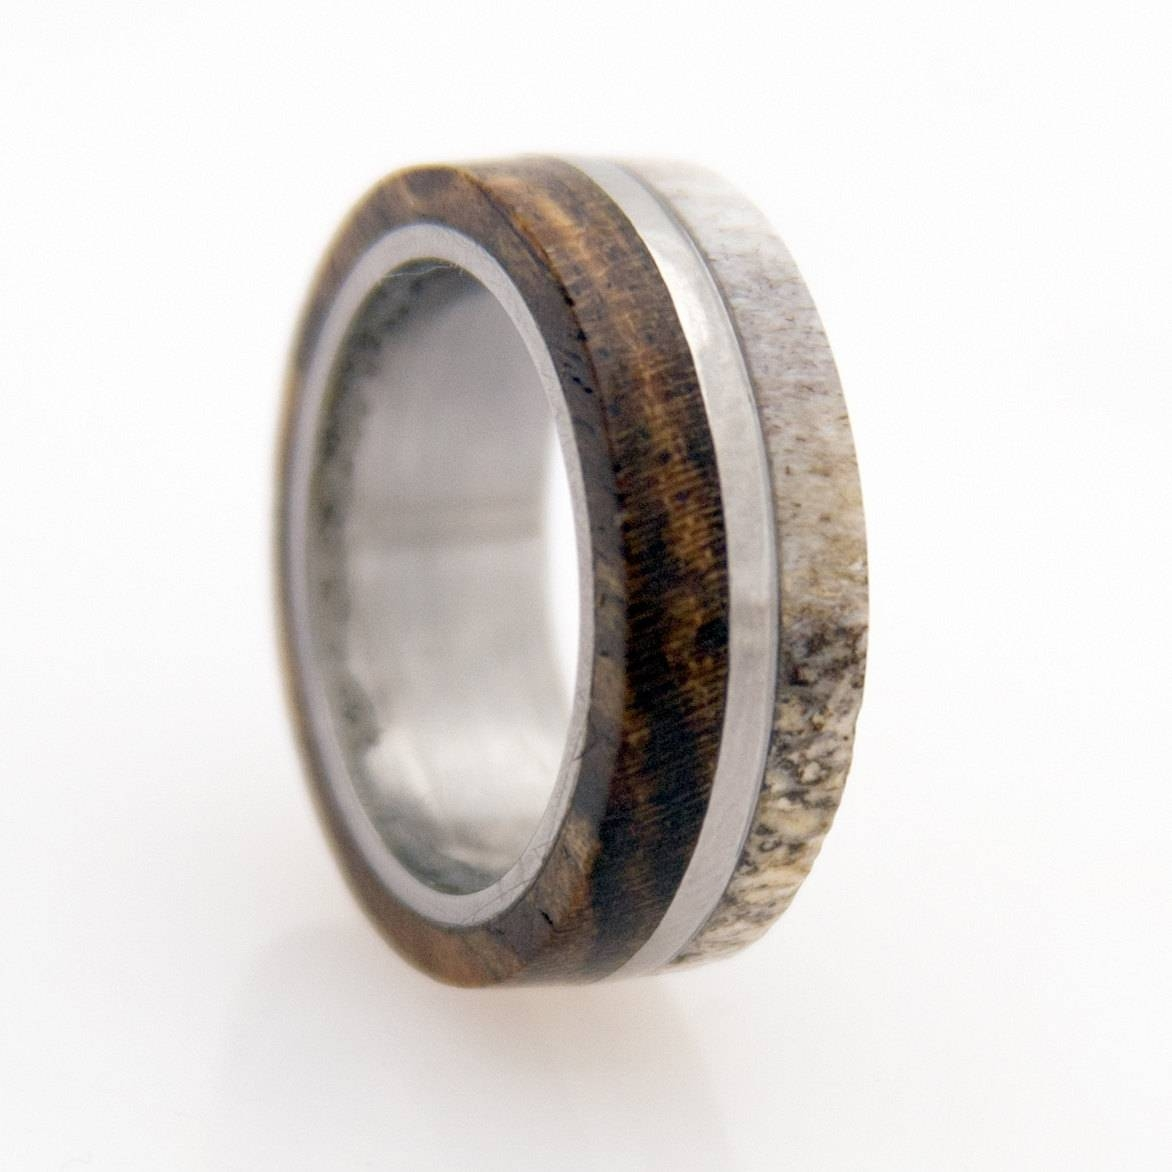 Wedding Band Titanium Wood Antler Mens Weddingaboutjewelry Intended For Men's Wood Grain Wedding Bands (View 12 of 15)